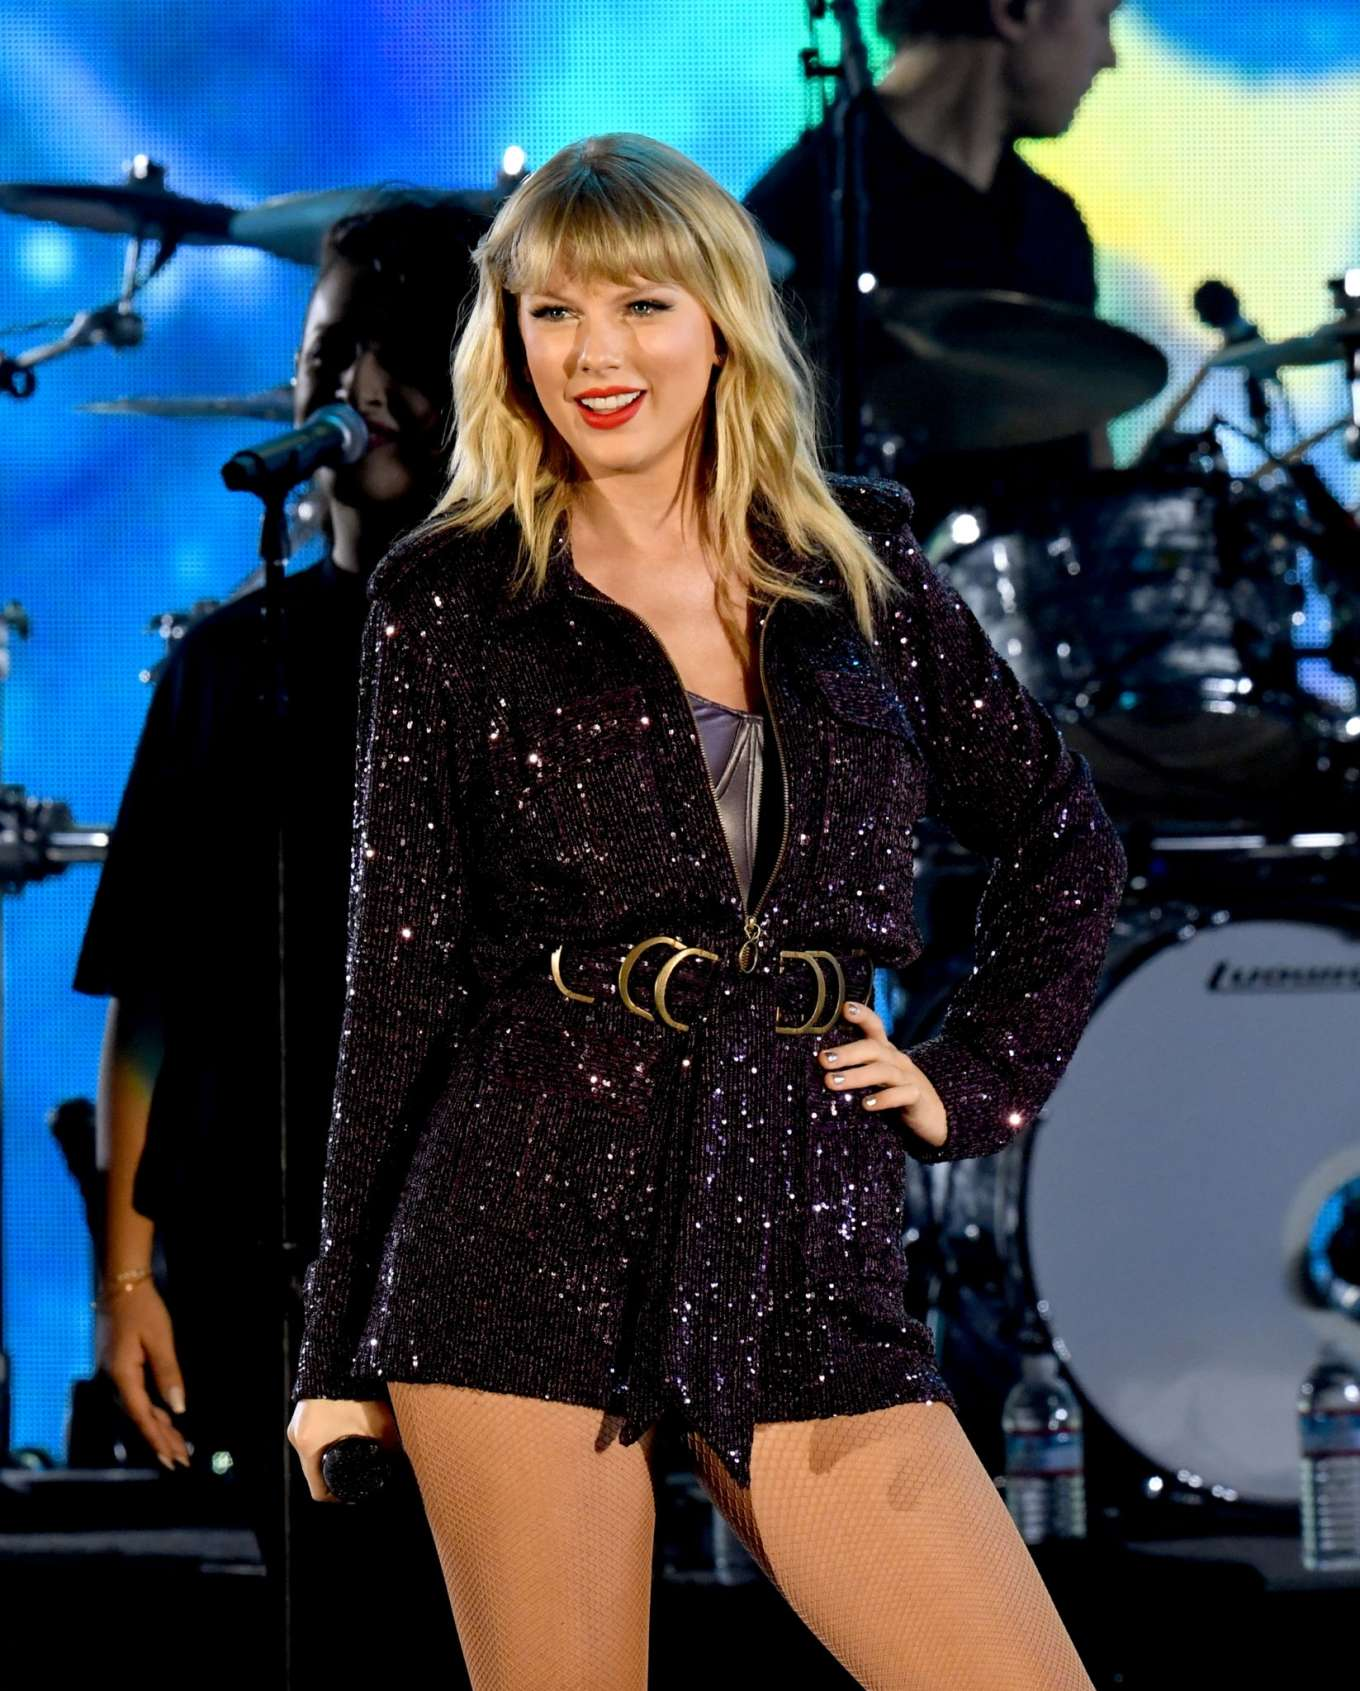 Taylor Swift - Performing at AT&T's We Can Survive Concert in Los Angeles